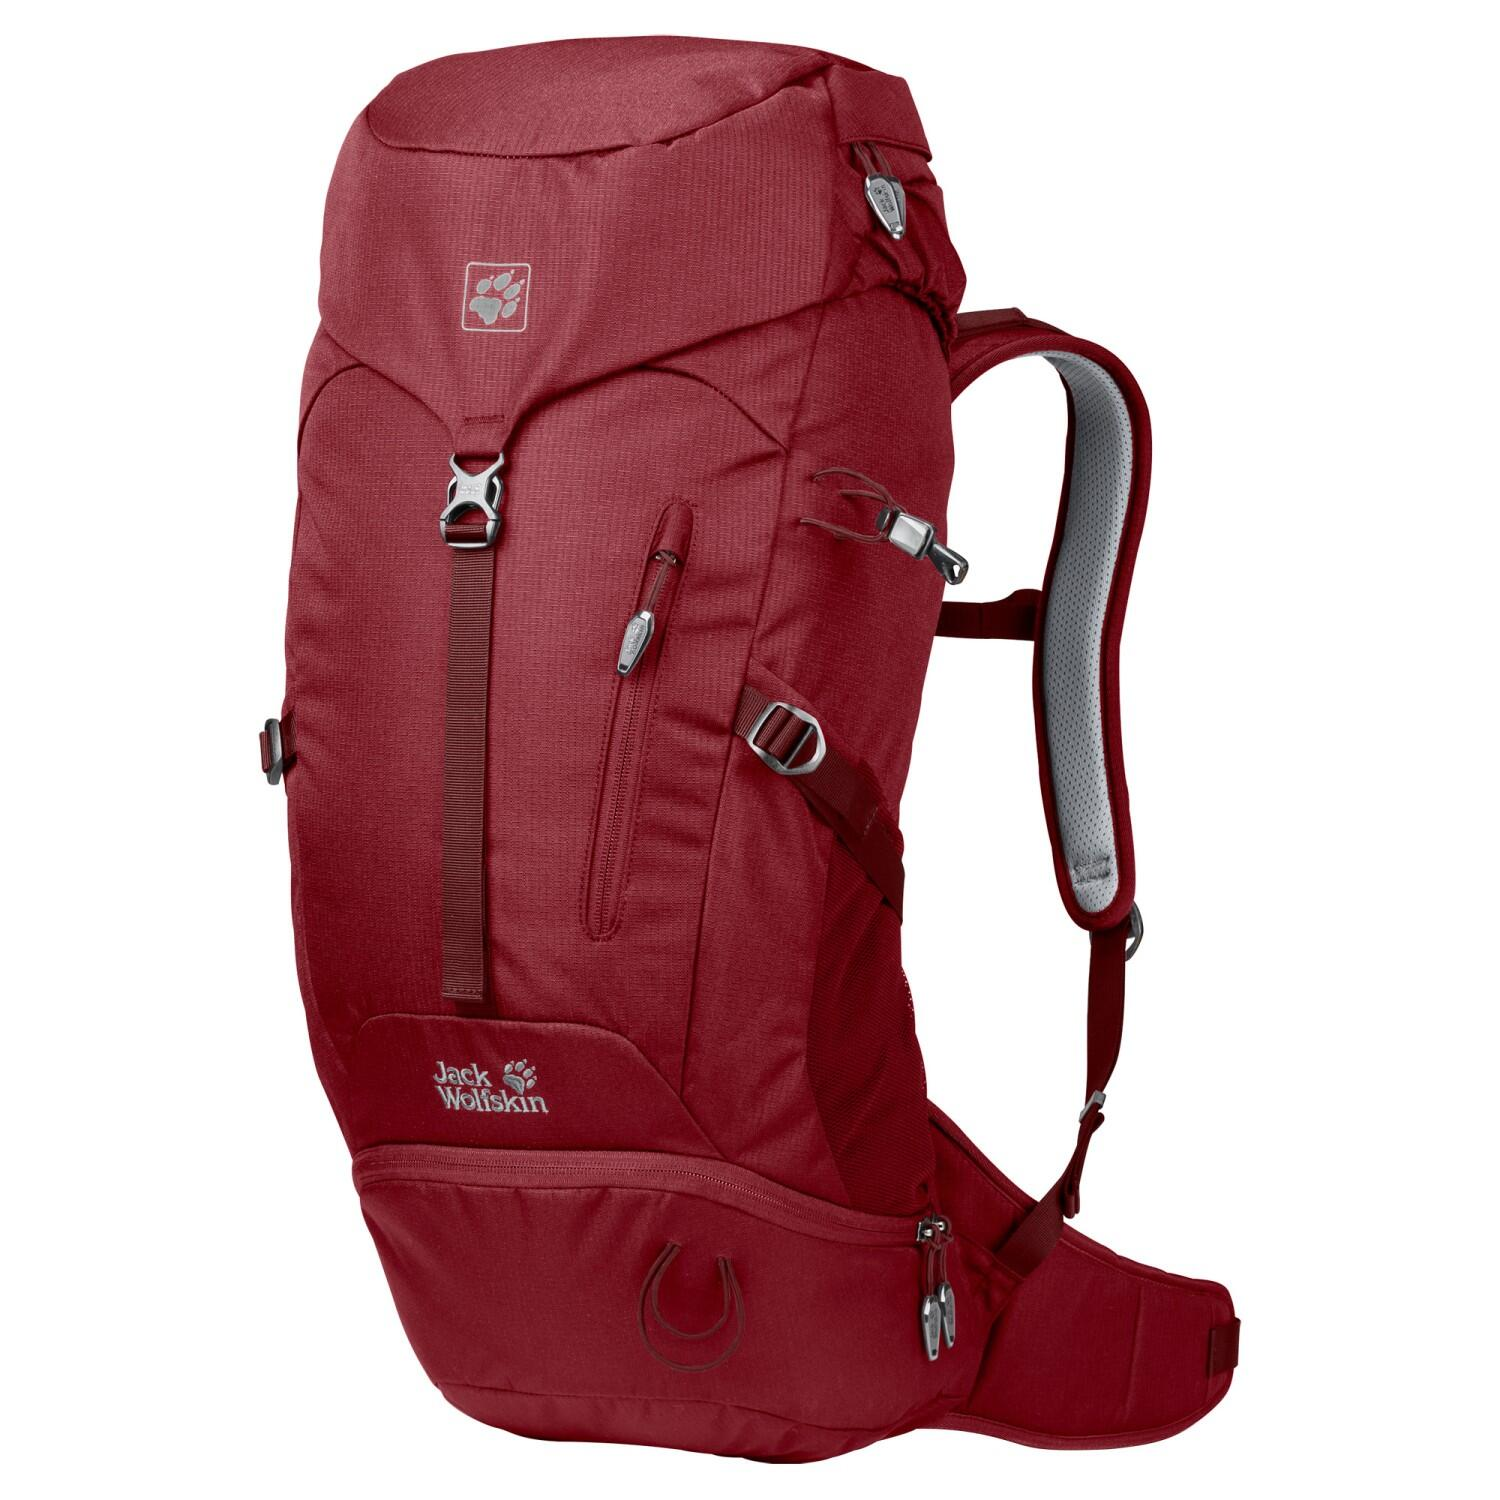 jack-wolfskin-astro-30-pack-rucksack-farbe-2049-red-maroon-